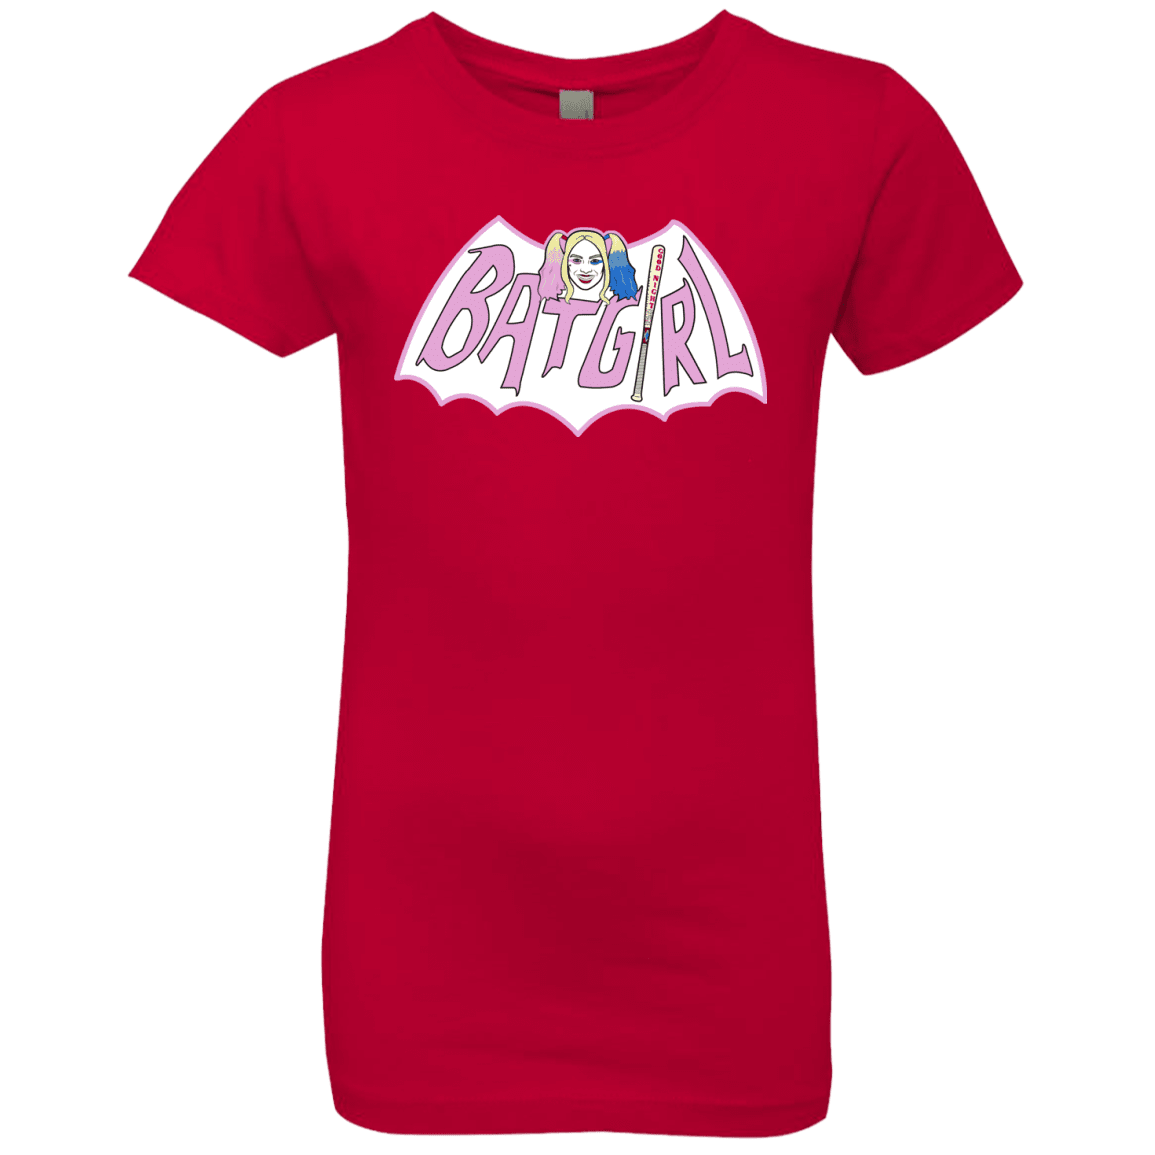 Batgirl Girls Premium T-Shirt